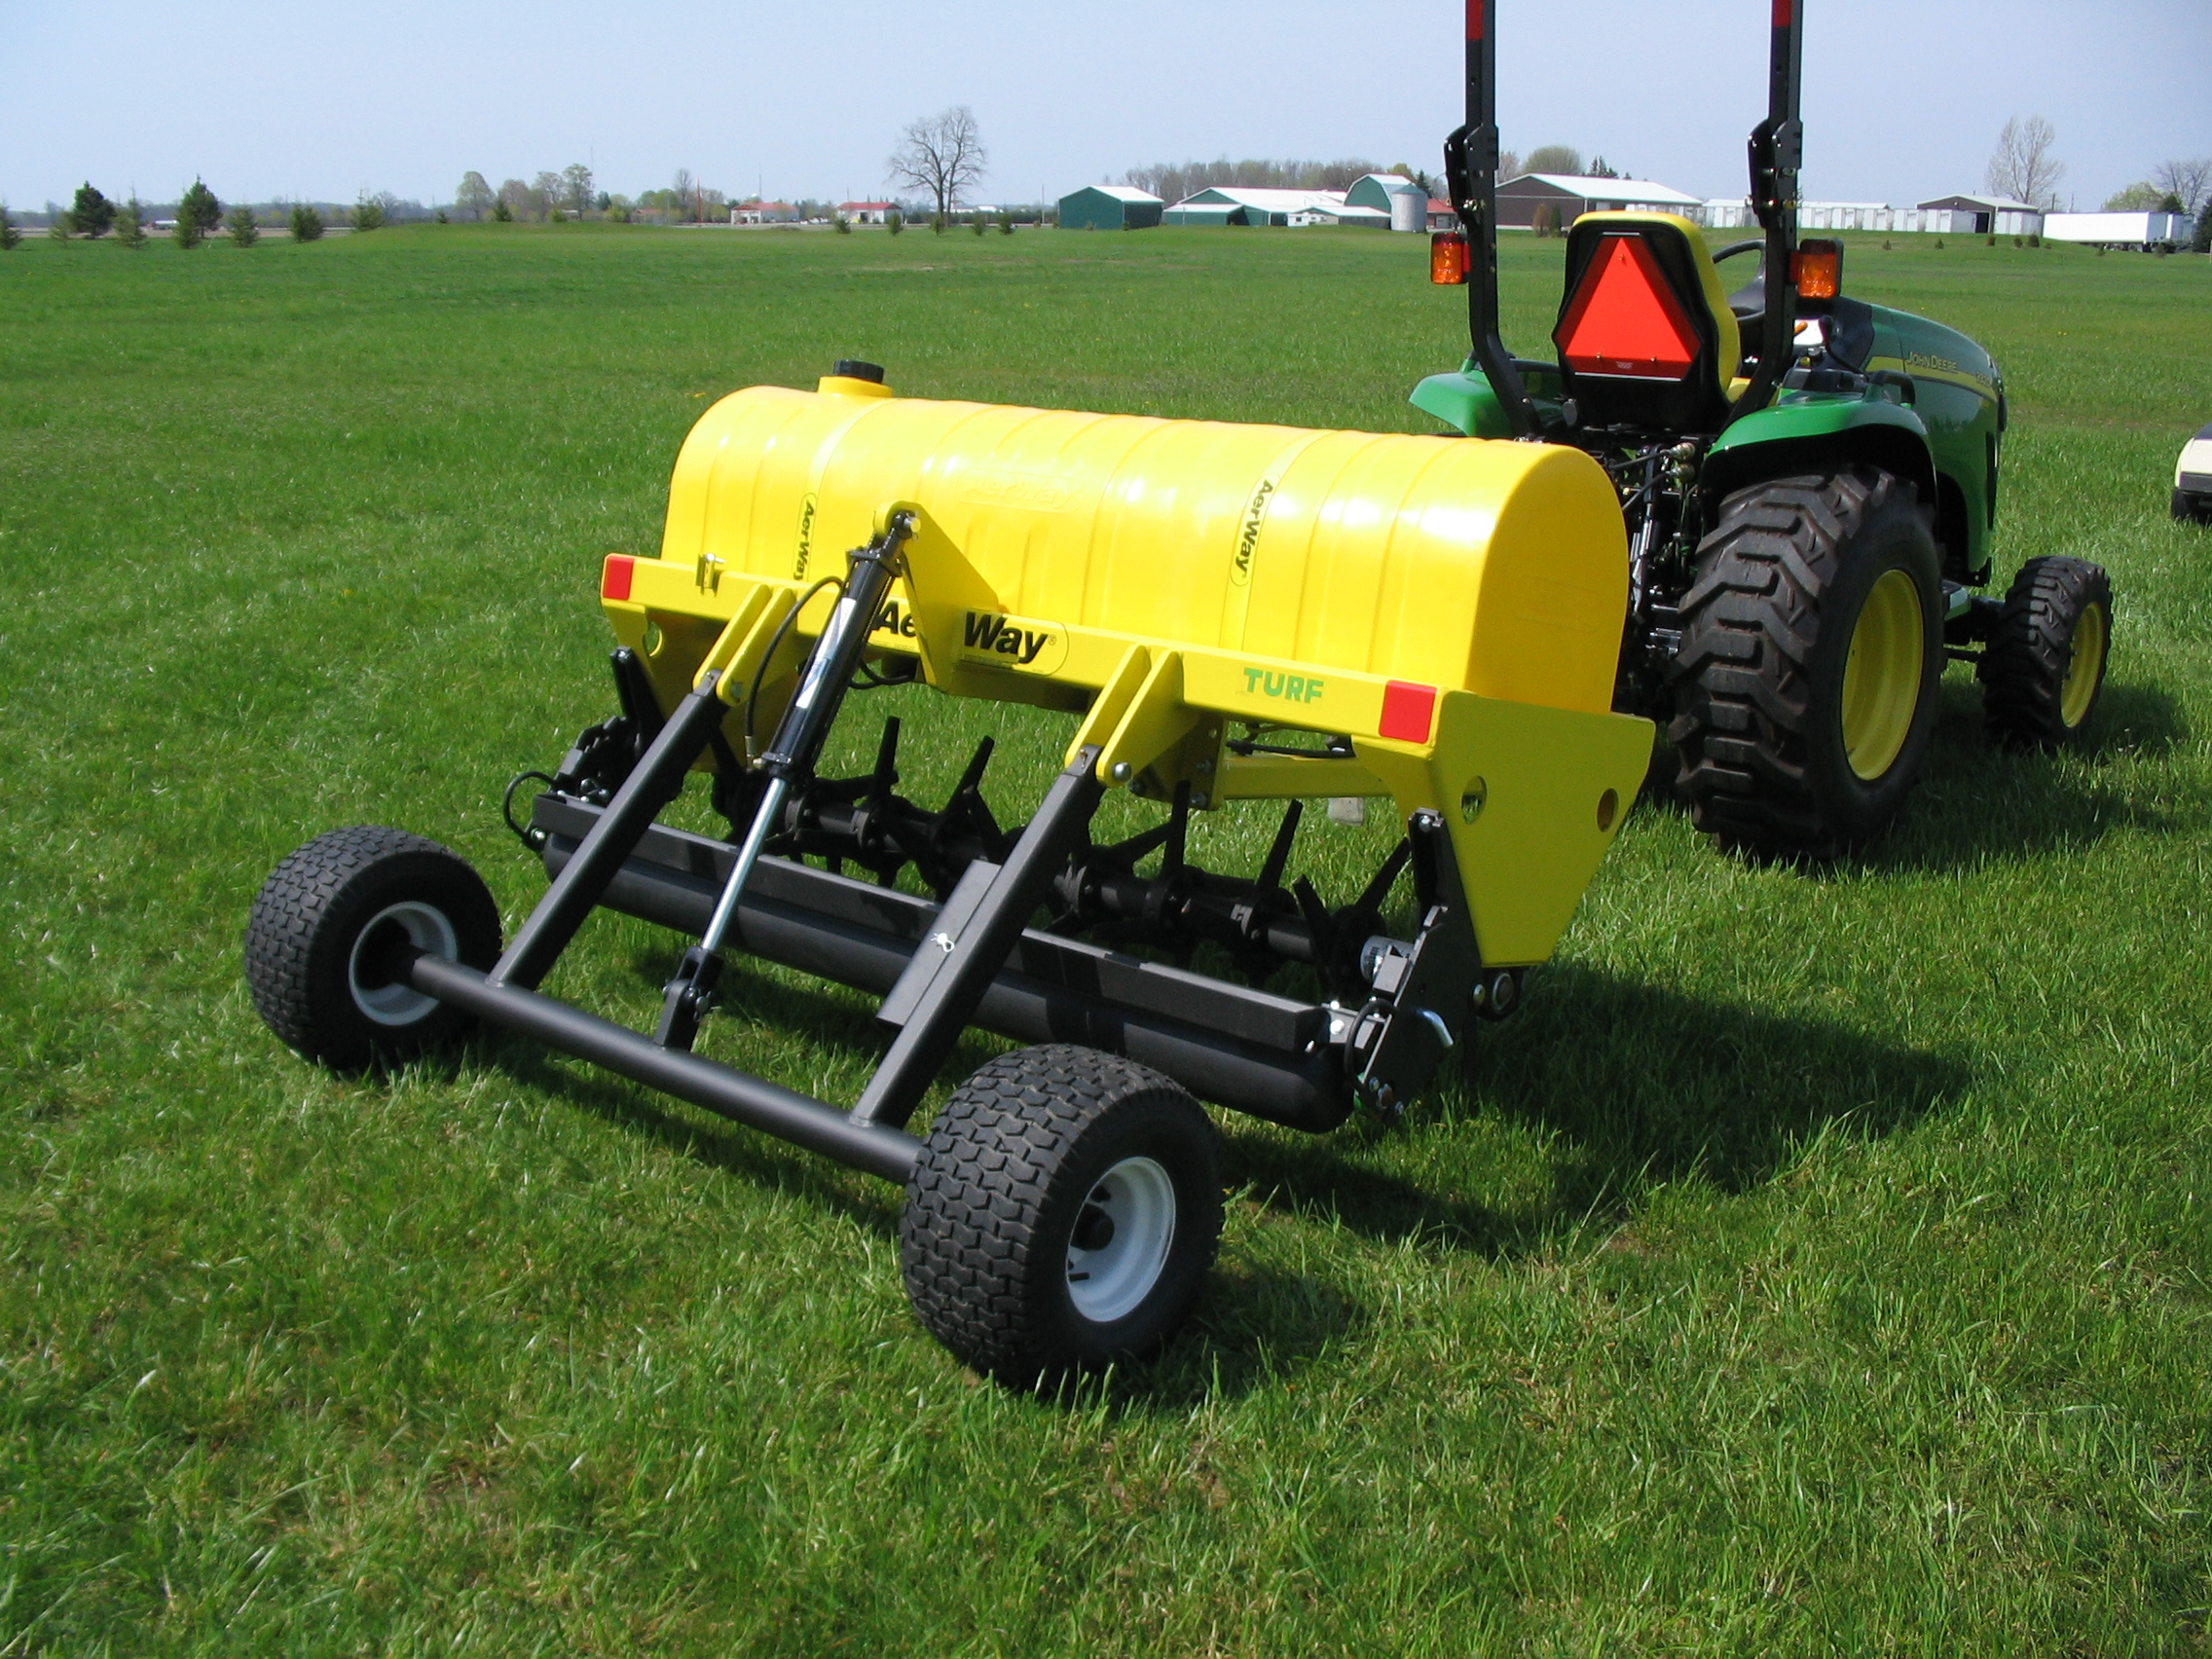 AERWAY now at AR MOWER!